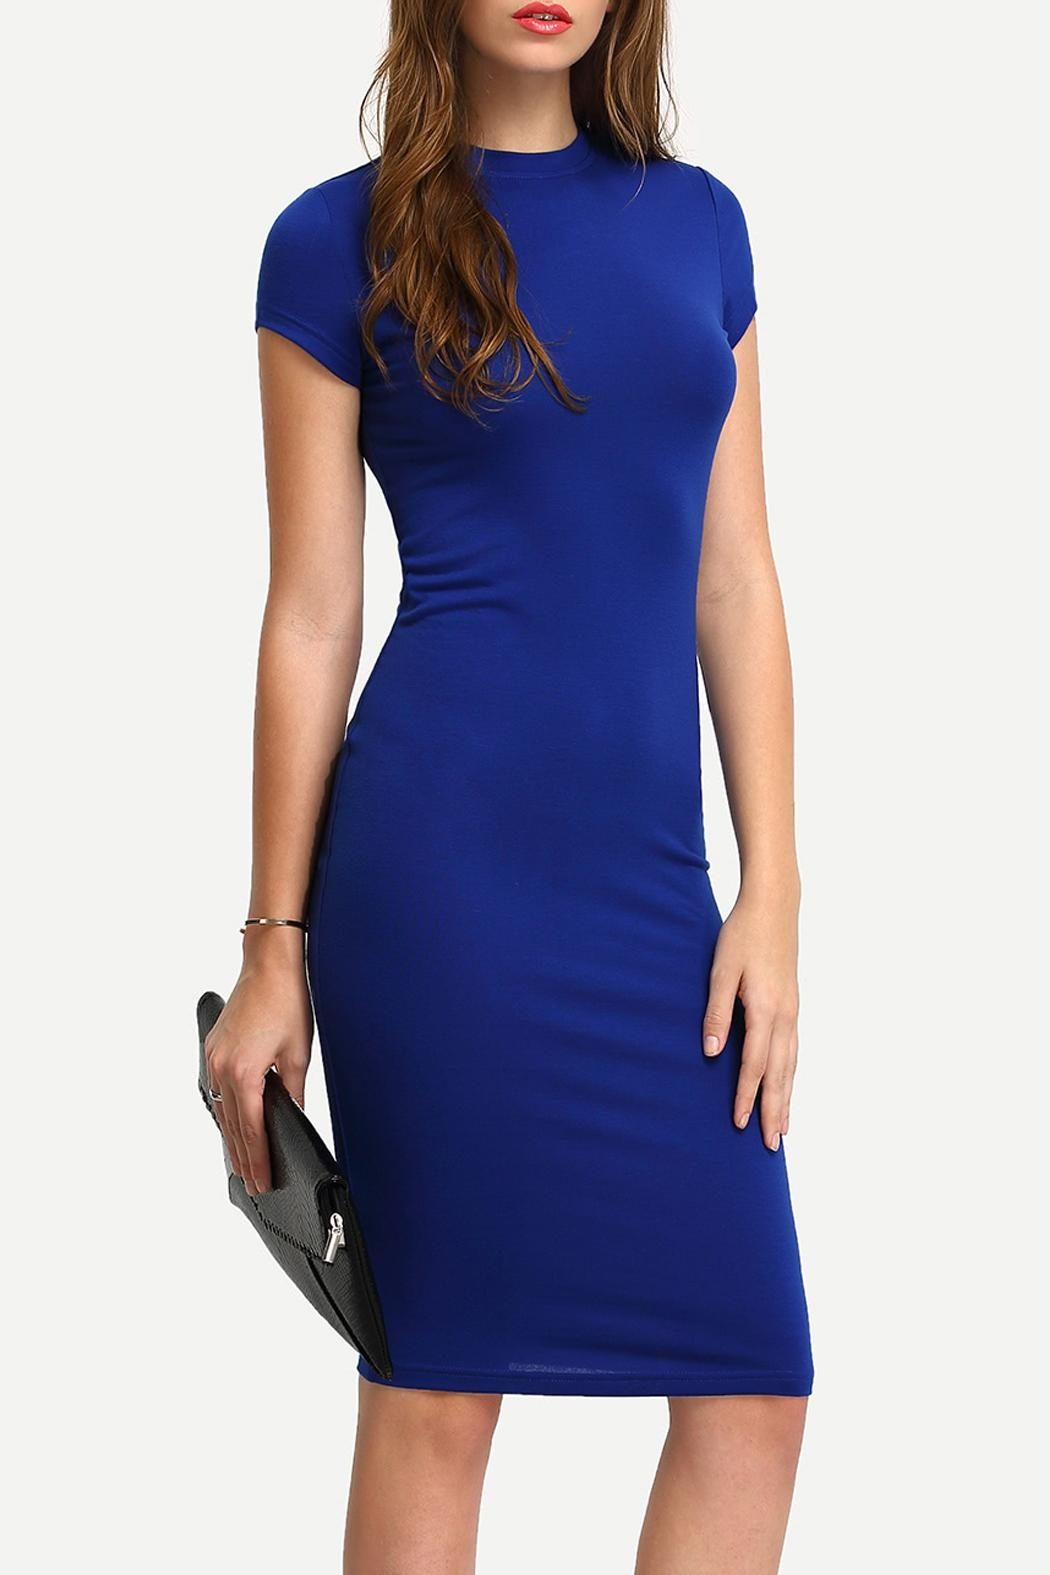 House of Atelier Blue Bodycon Dress - Main Image